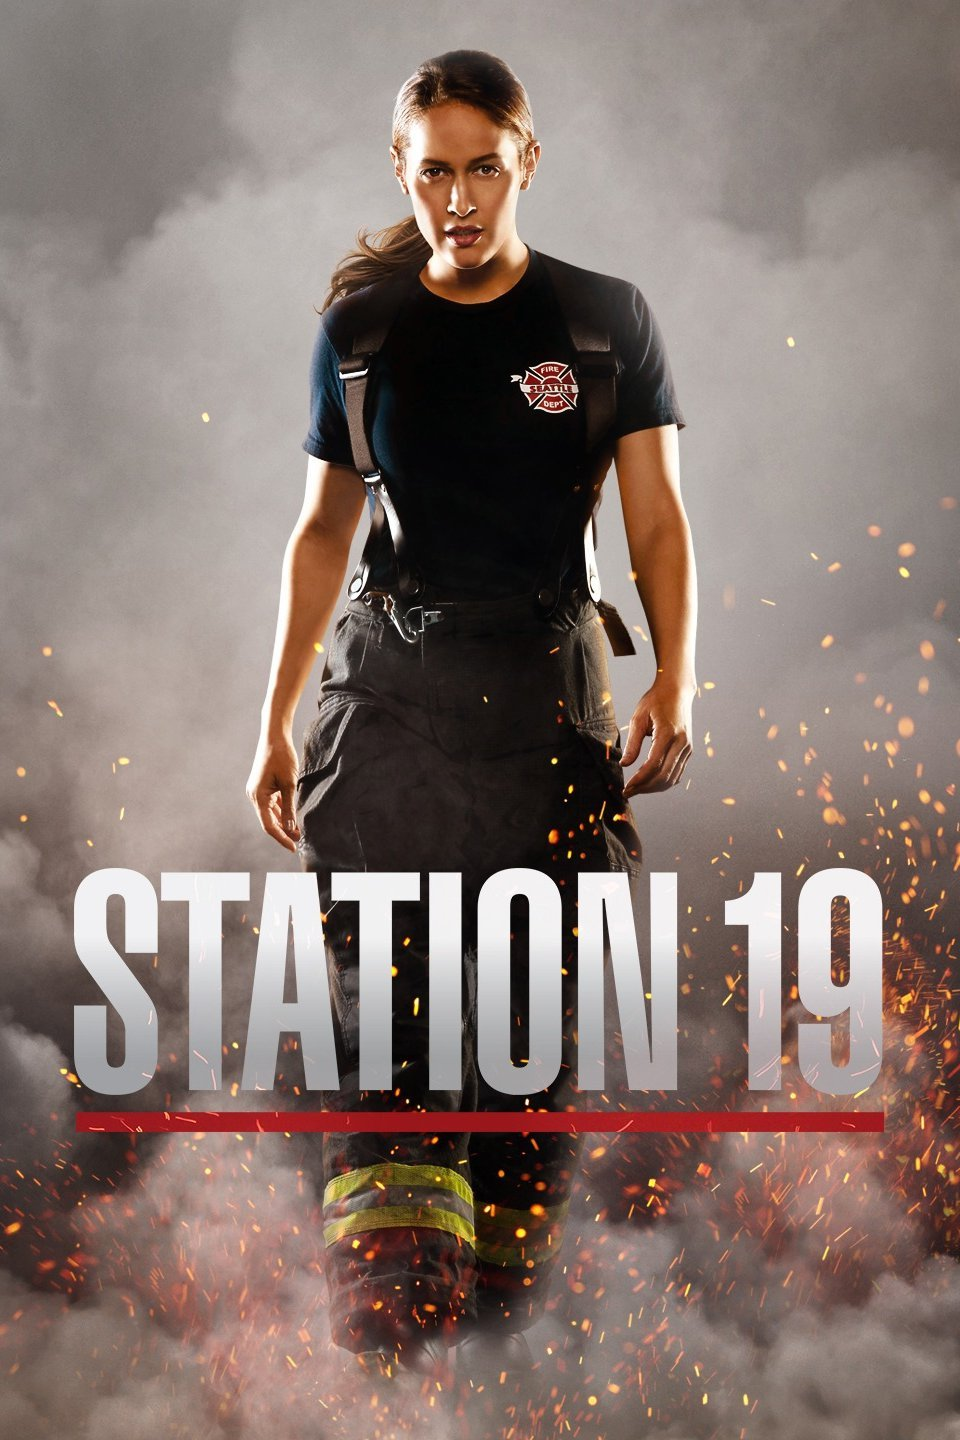 Station 19 2018: Season 1 - Full (2/10)